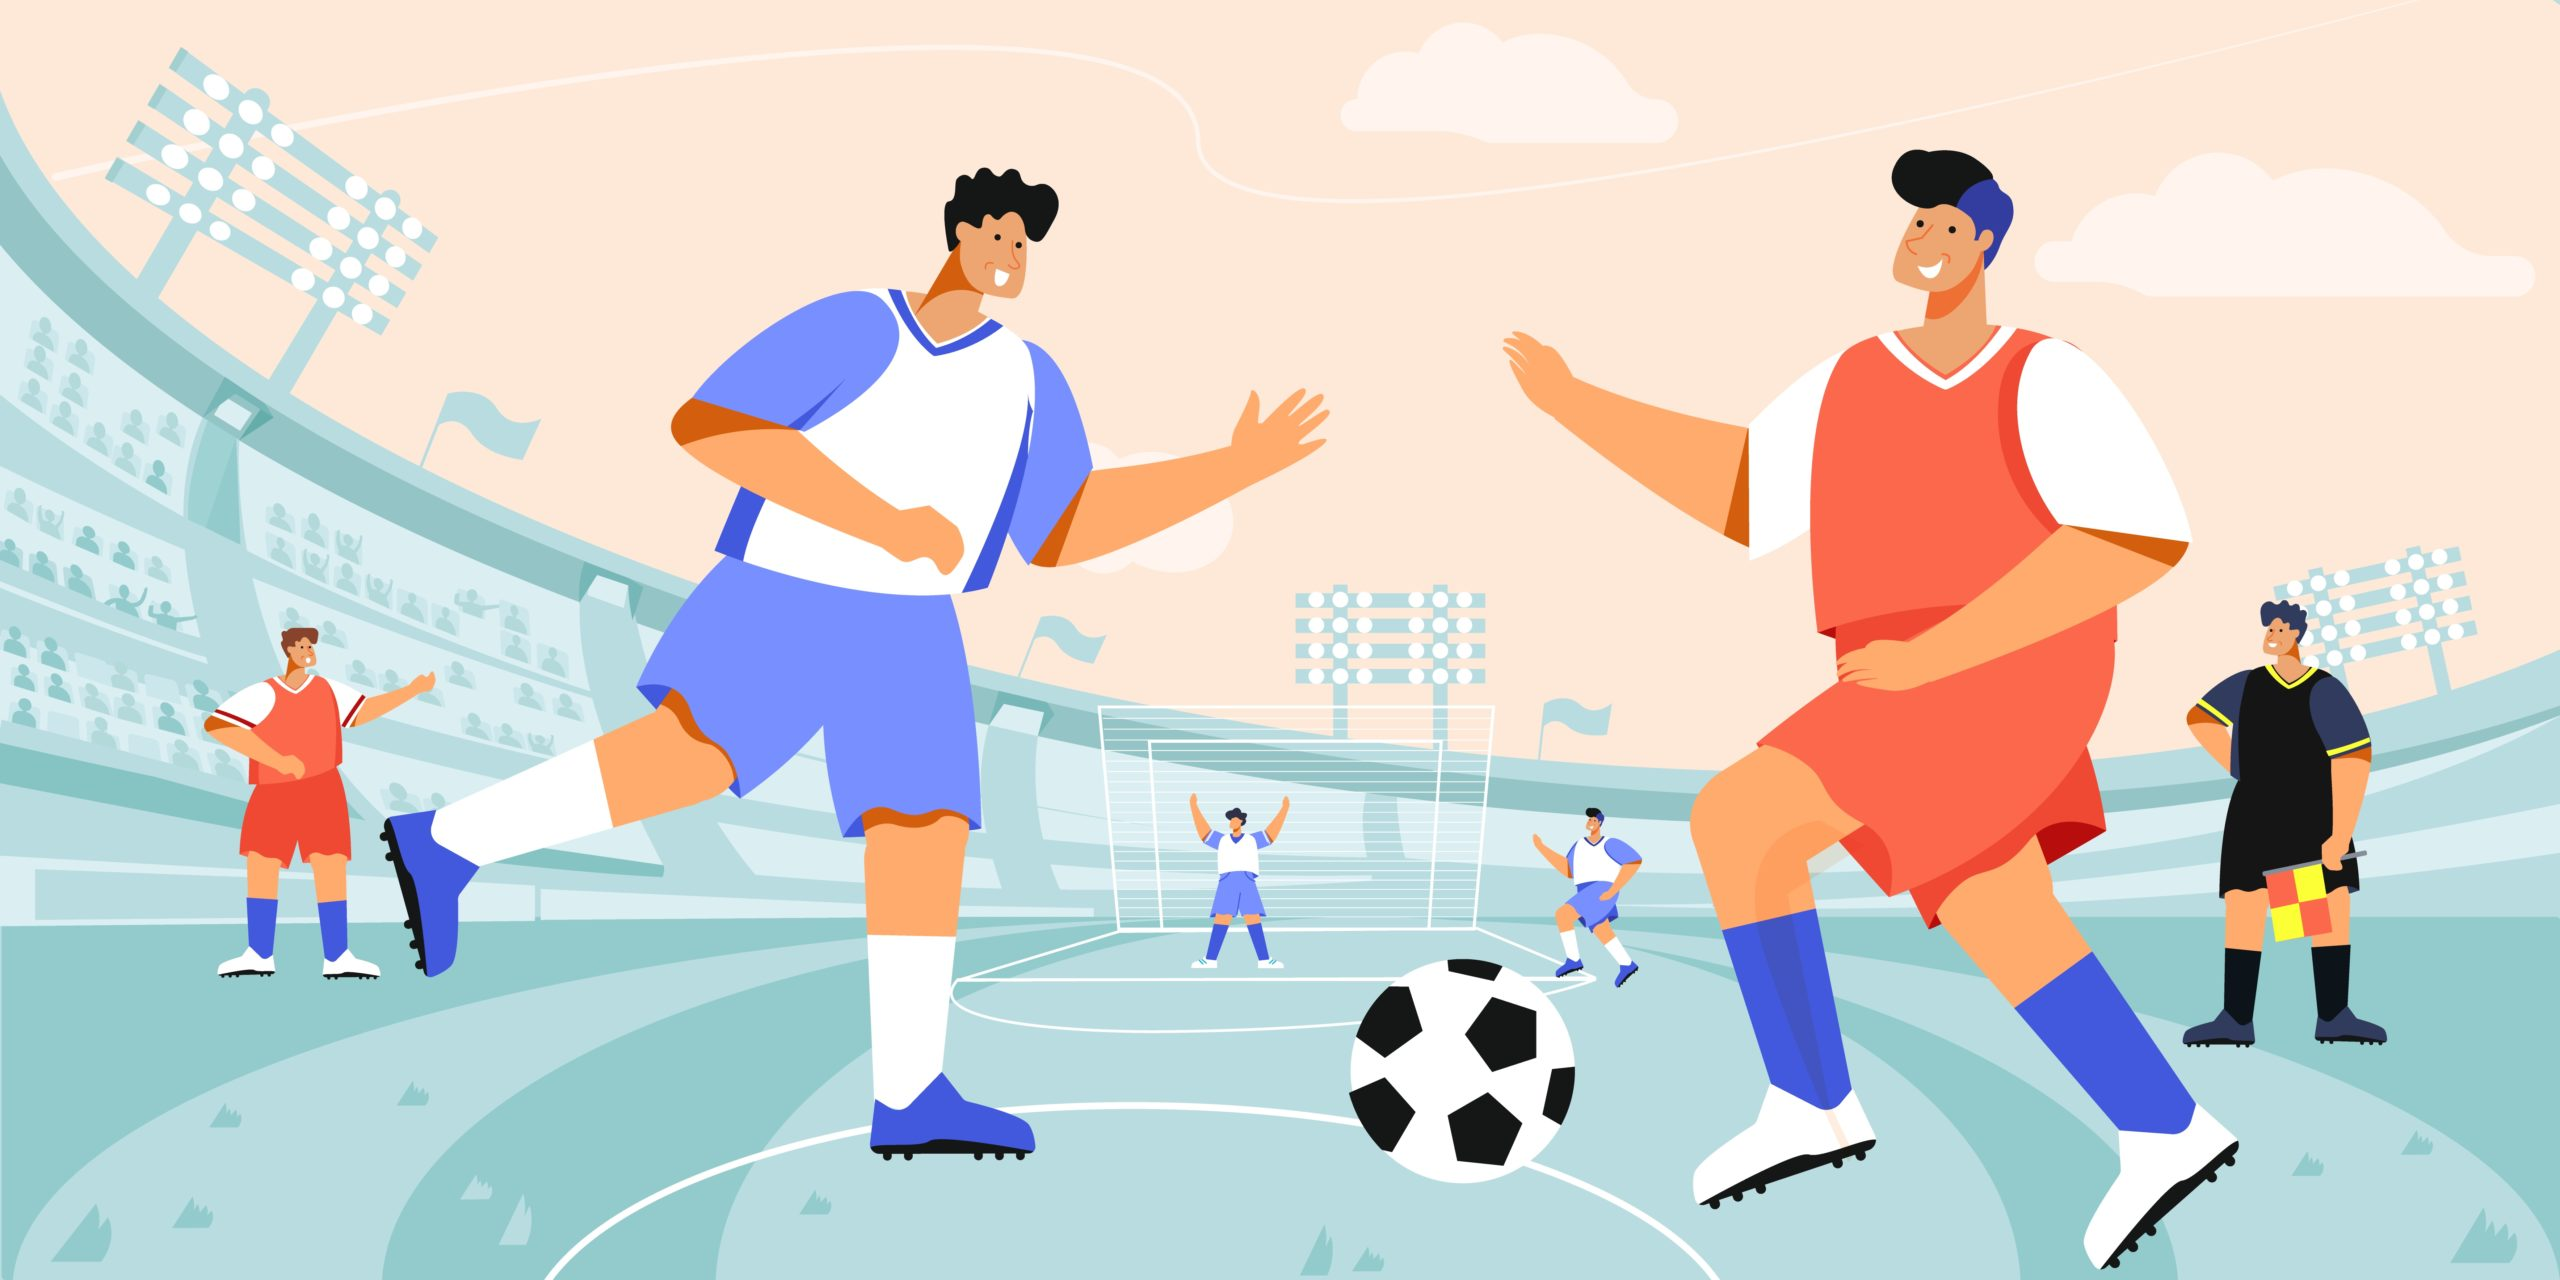 Role of Big Data in sports.